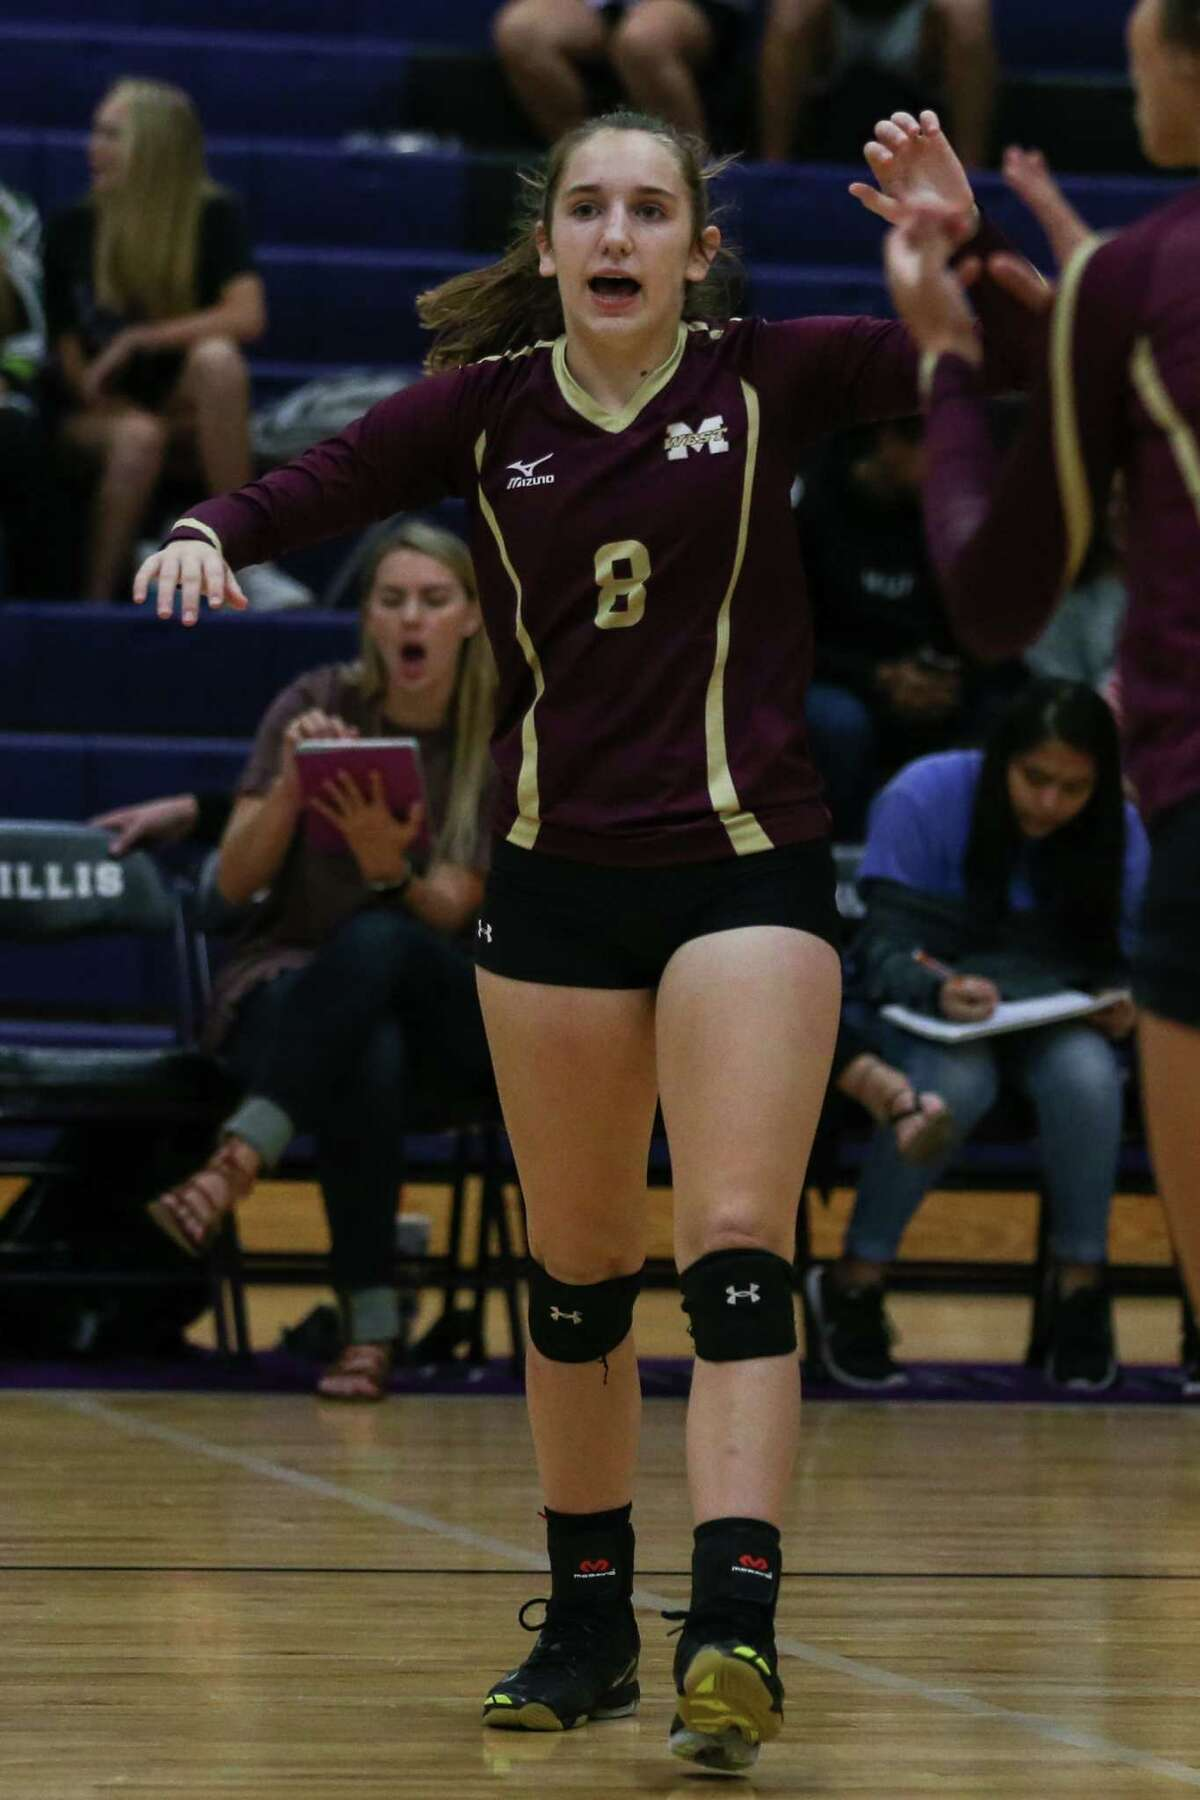 Magnolia West's Alyssa May (8) celebrates during the varsity volleyball game against Willis on Tuesday, Sept. 19, 2017, at Willis High School. (Michael Minasi / Chronicle)